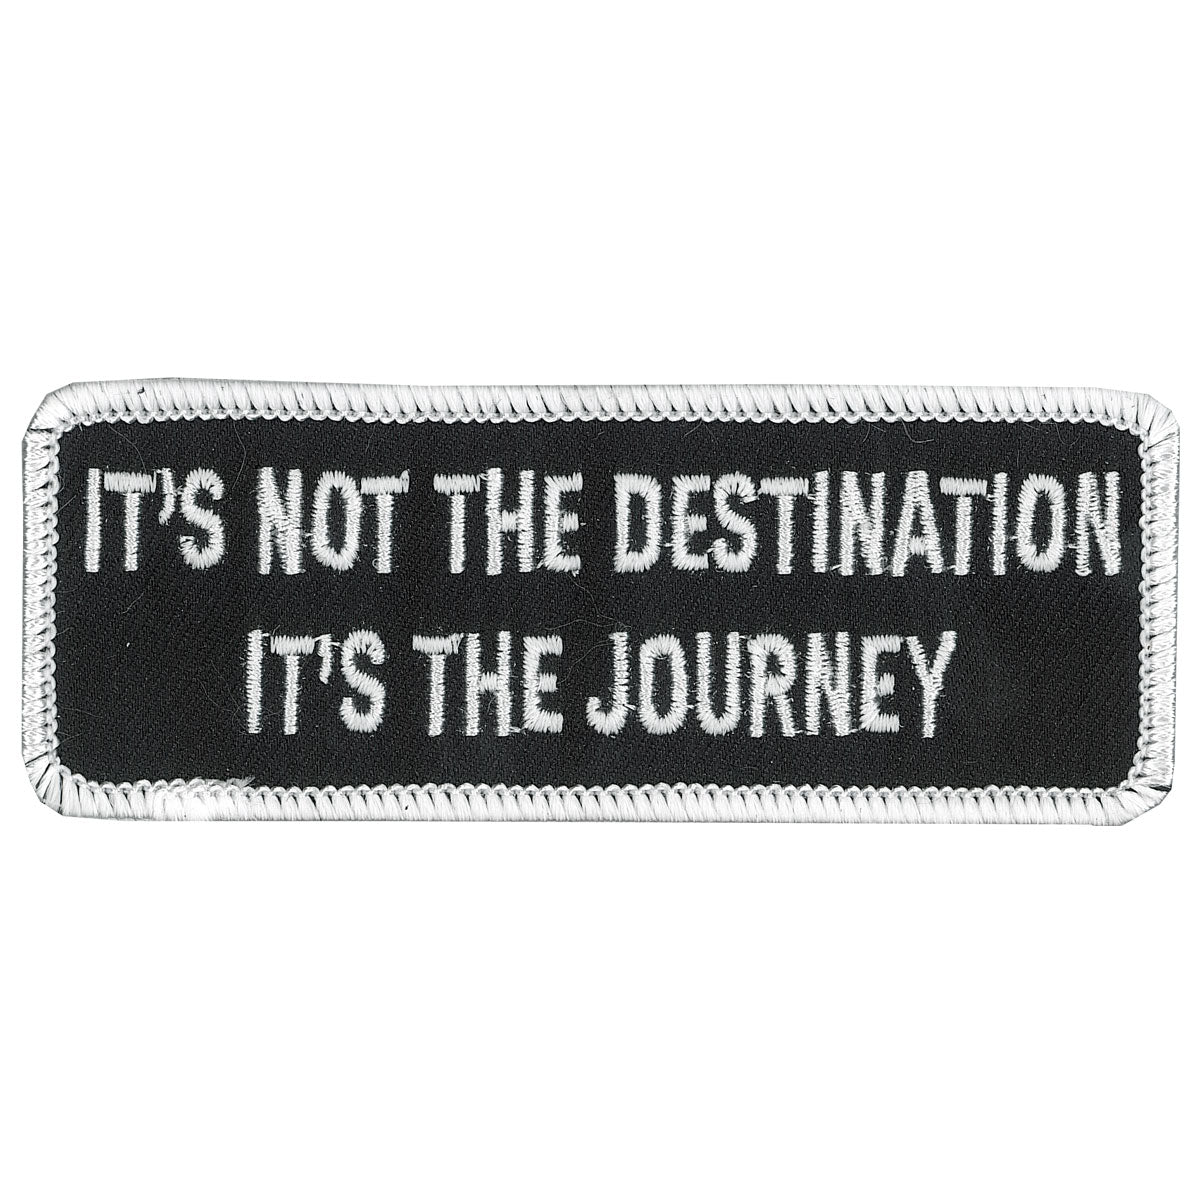 "Hot Leathers Not The Destination 4"" x 2"" Patch"